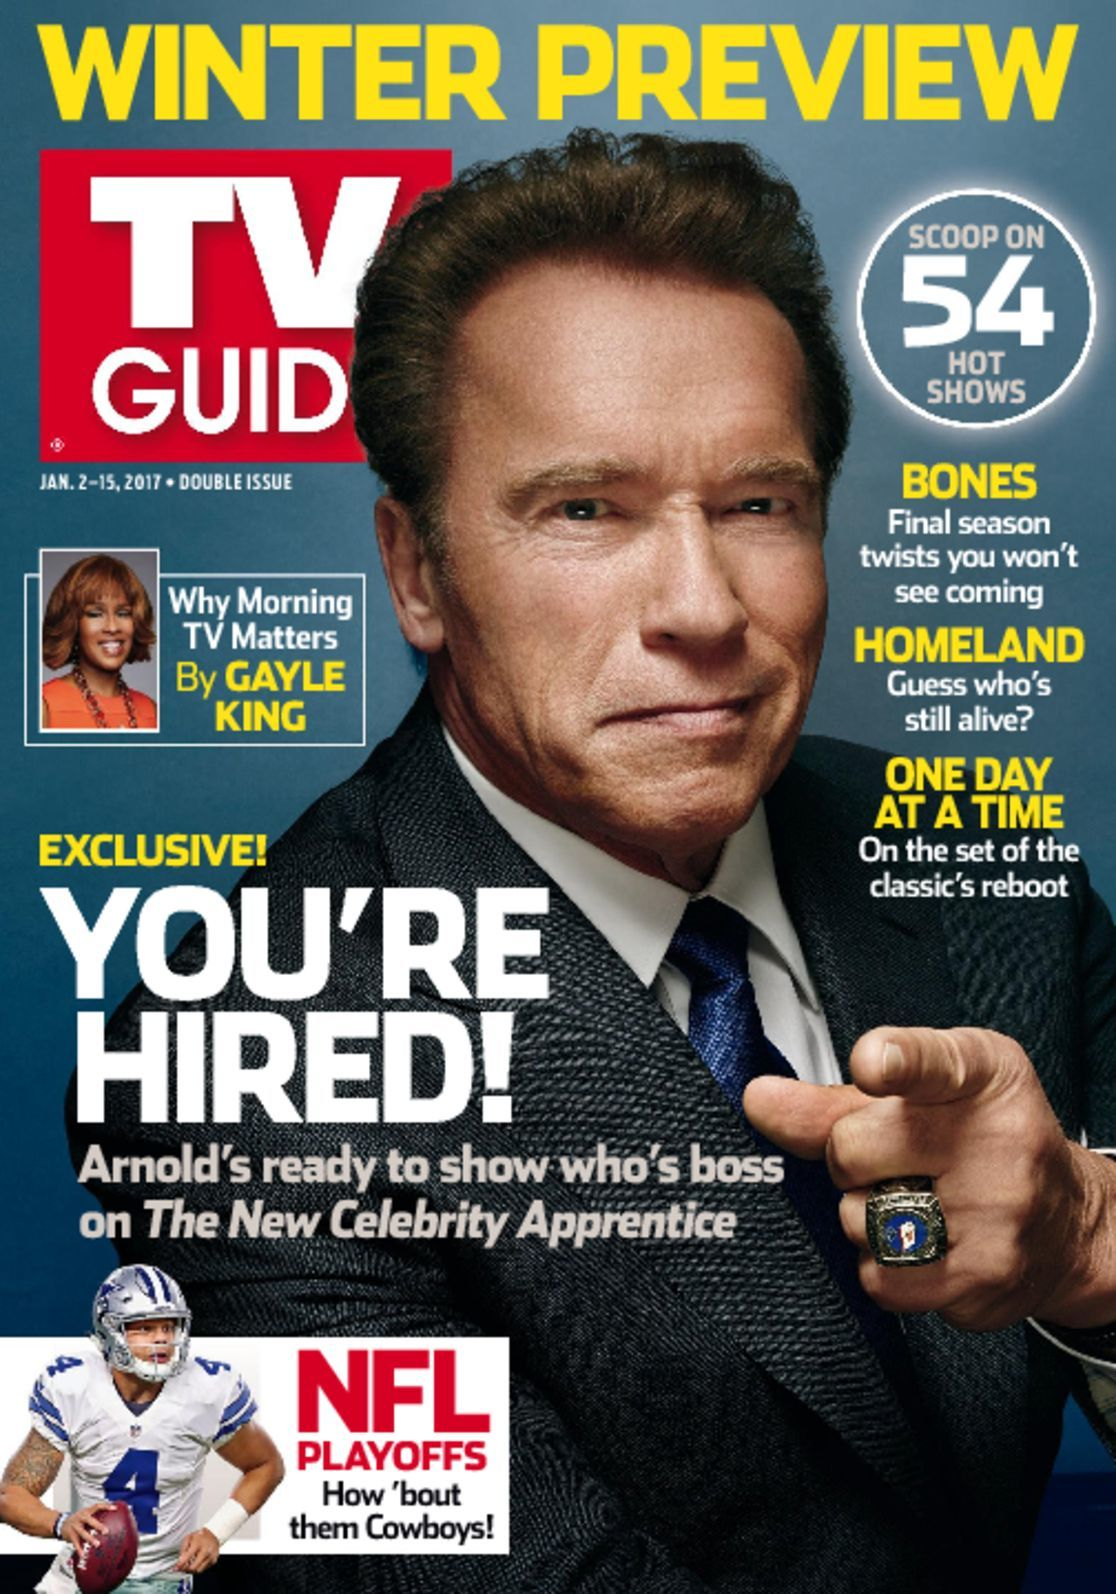 TV Guide: Amazon.com: Magazines